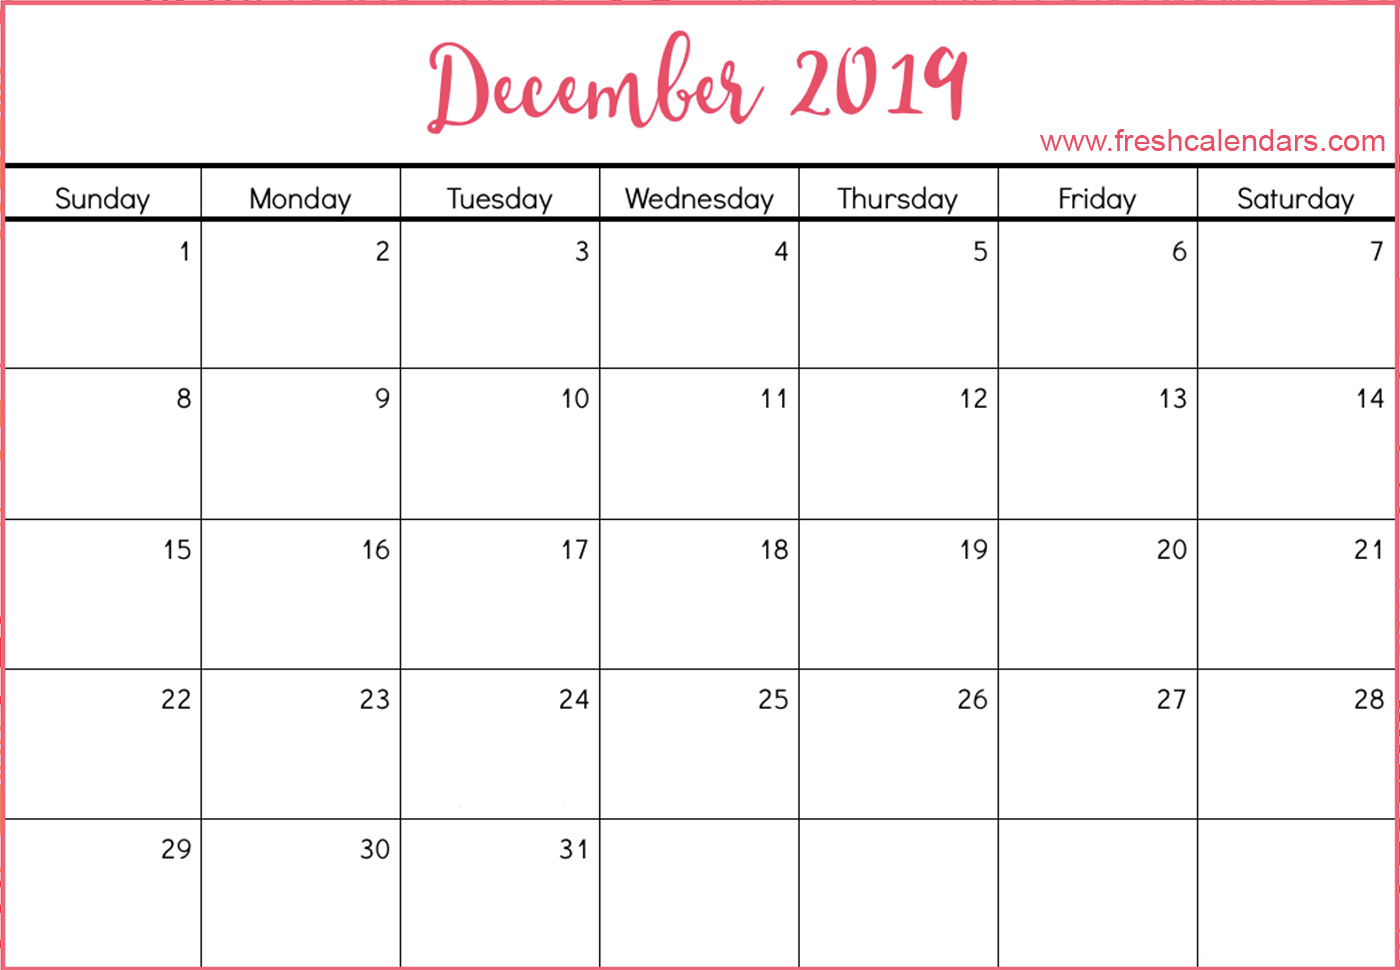 December 2019 Calendar Free Download